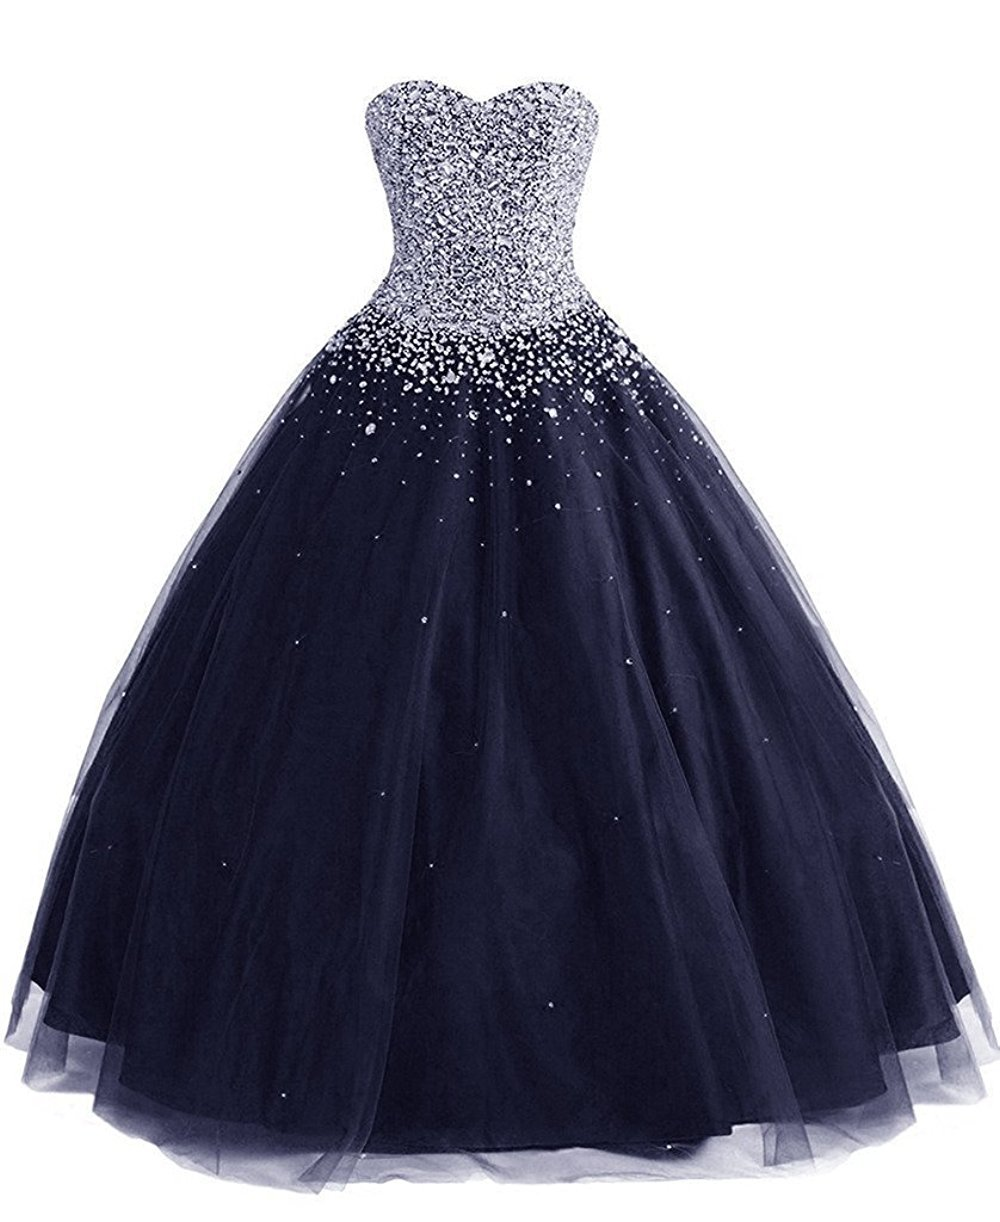 MEILISAY Meilishuo Women's Sweetheart Sparkly Beading Quinceanera Dresses Long 2017 Prom Party Ball Gown With Rhinestones